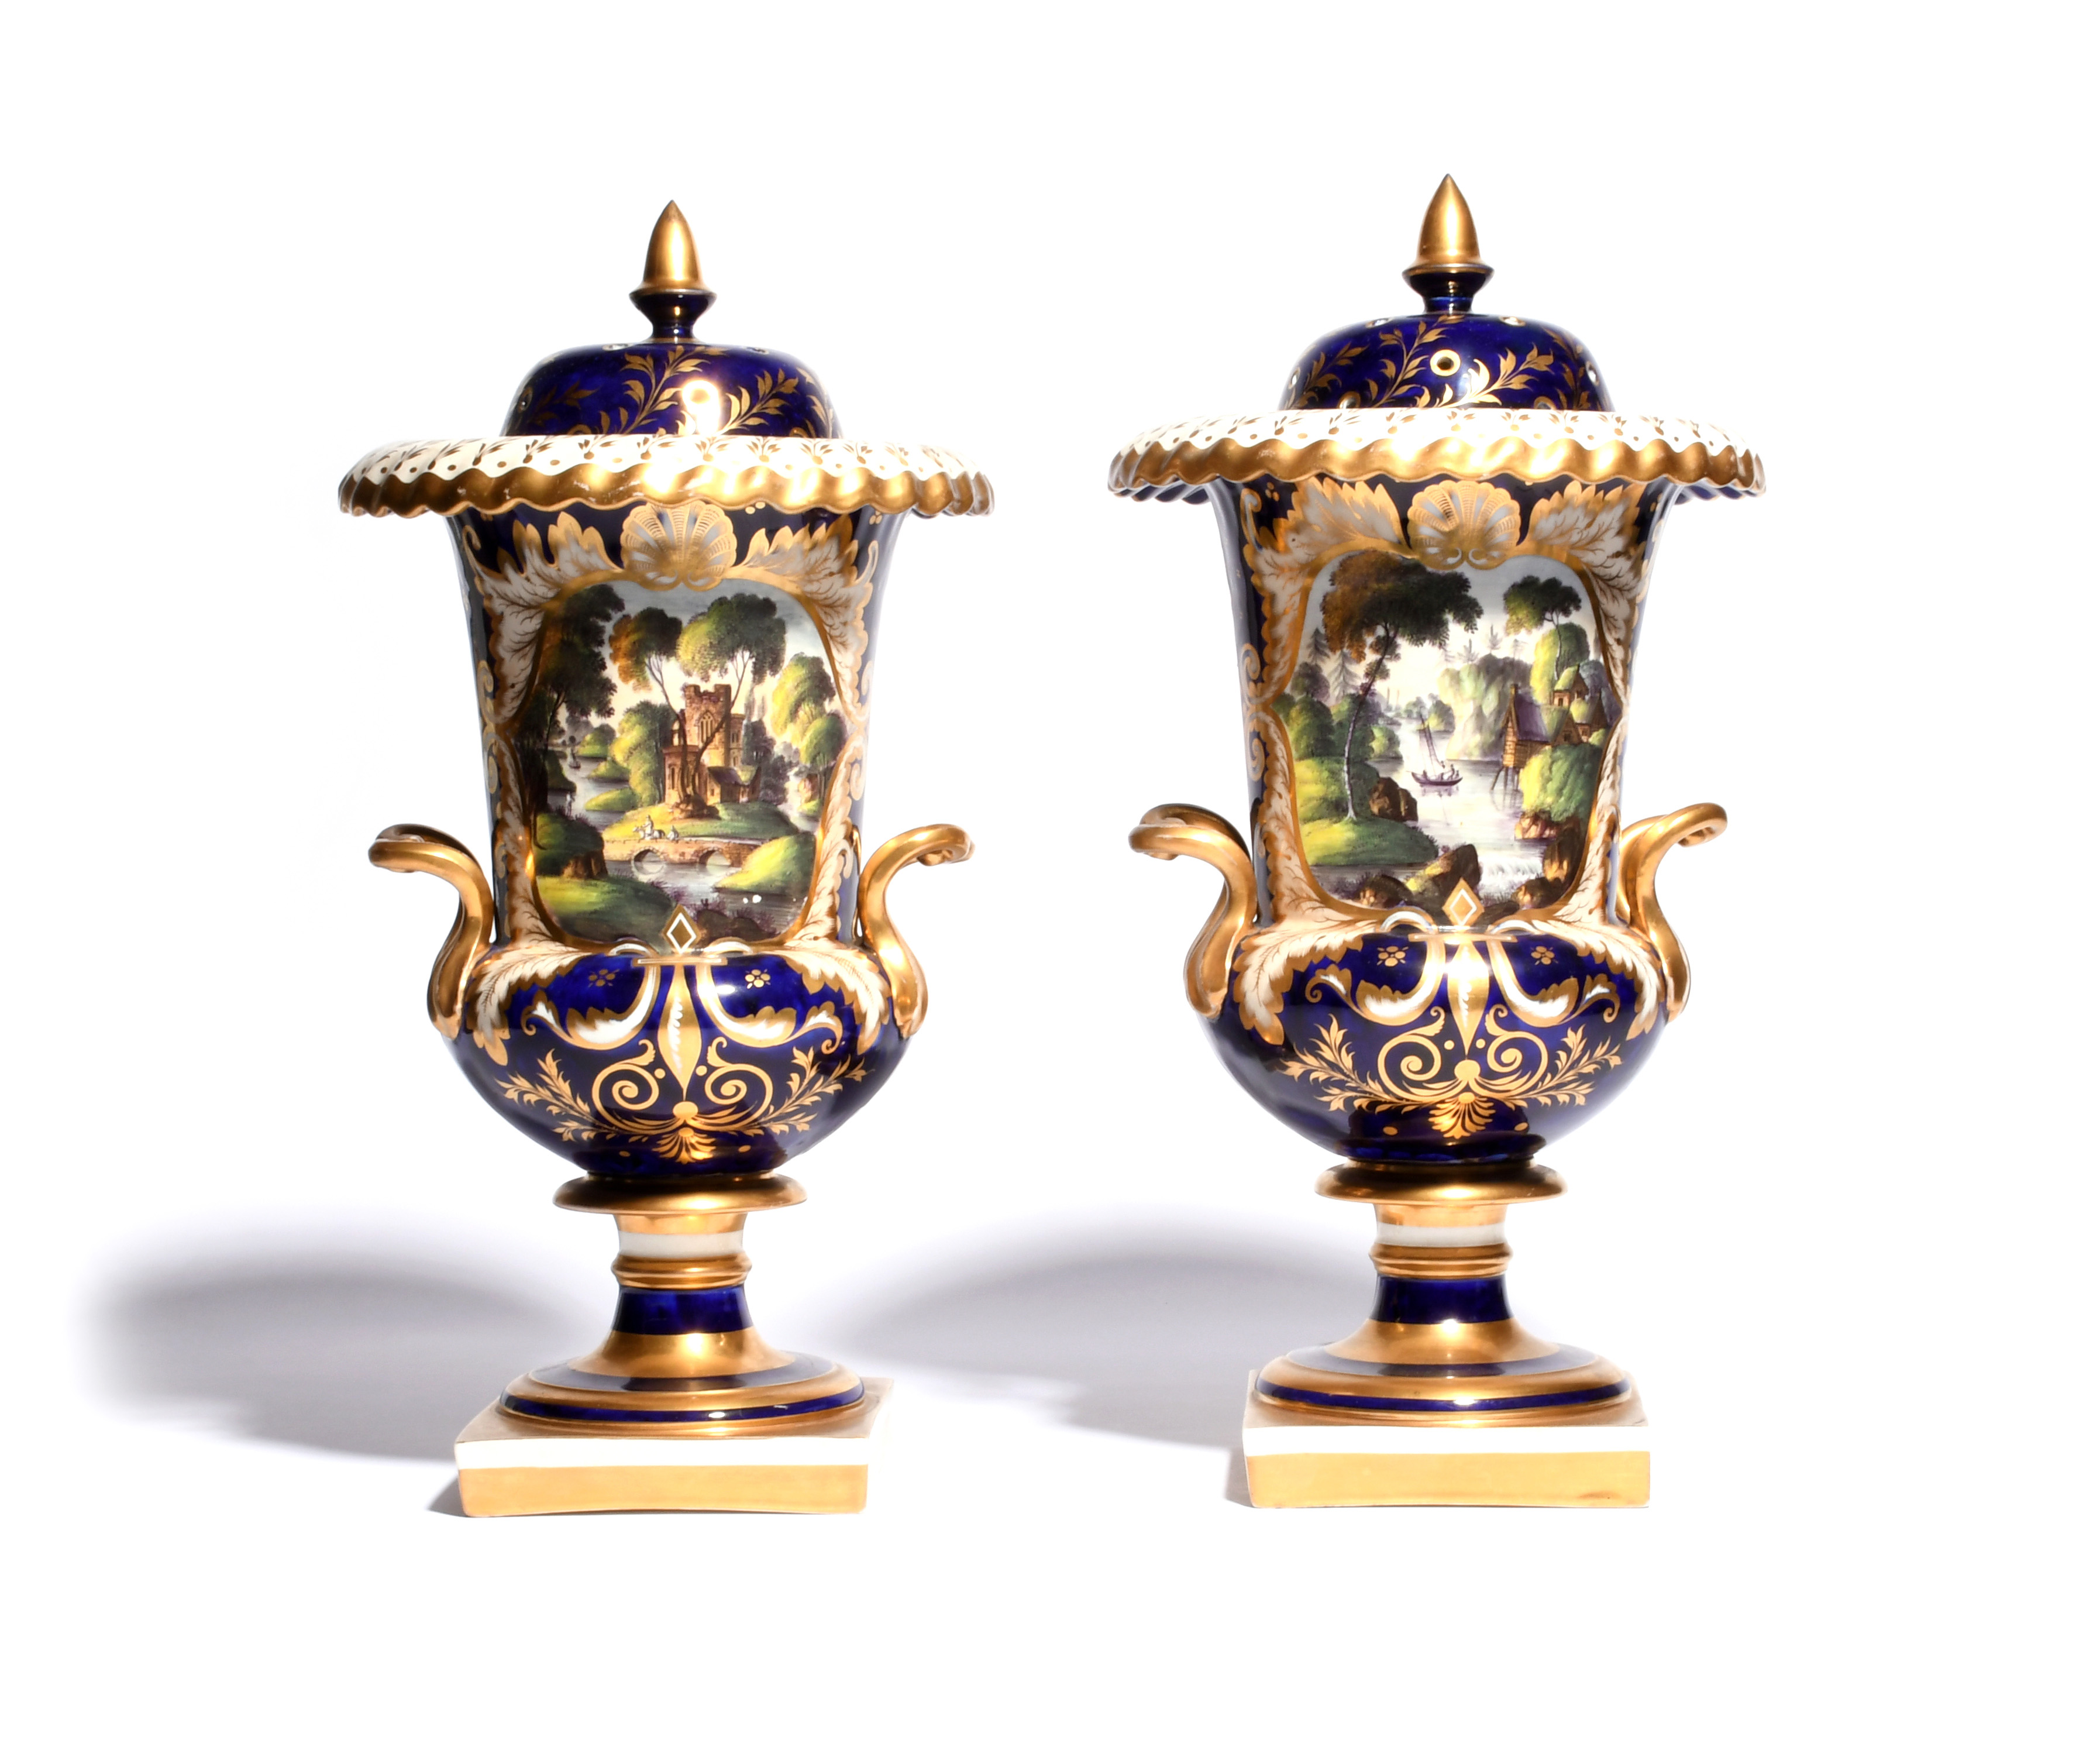 A large pair of English porcelain vases and covers c.1830-40, the tall campana forms painted with